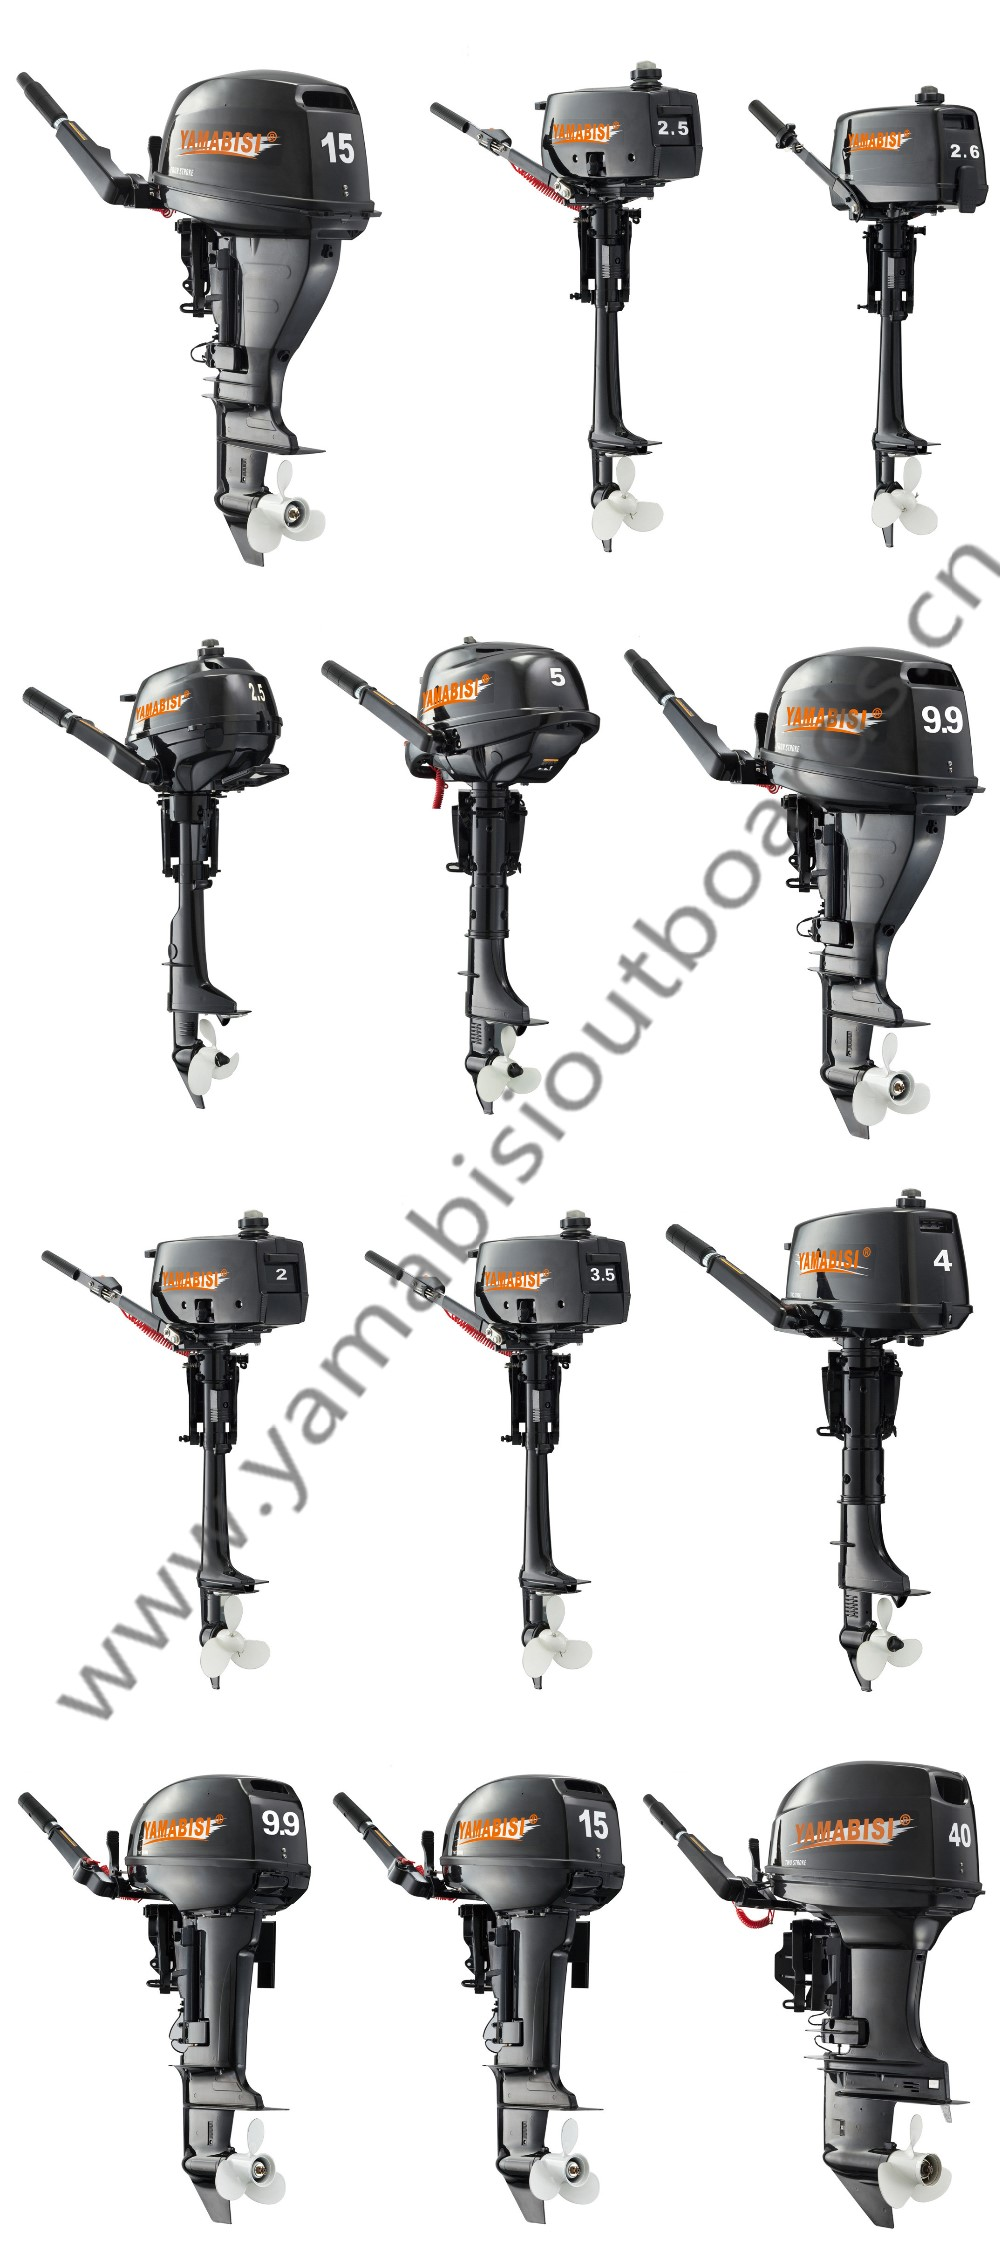 CE-Approved 2 stroke YAMABISI outboard motor/engine(2 hp 2